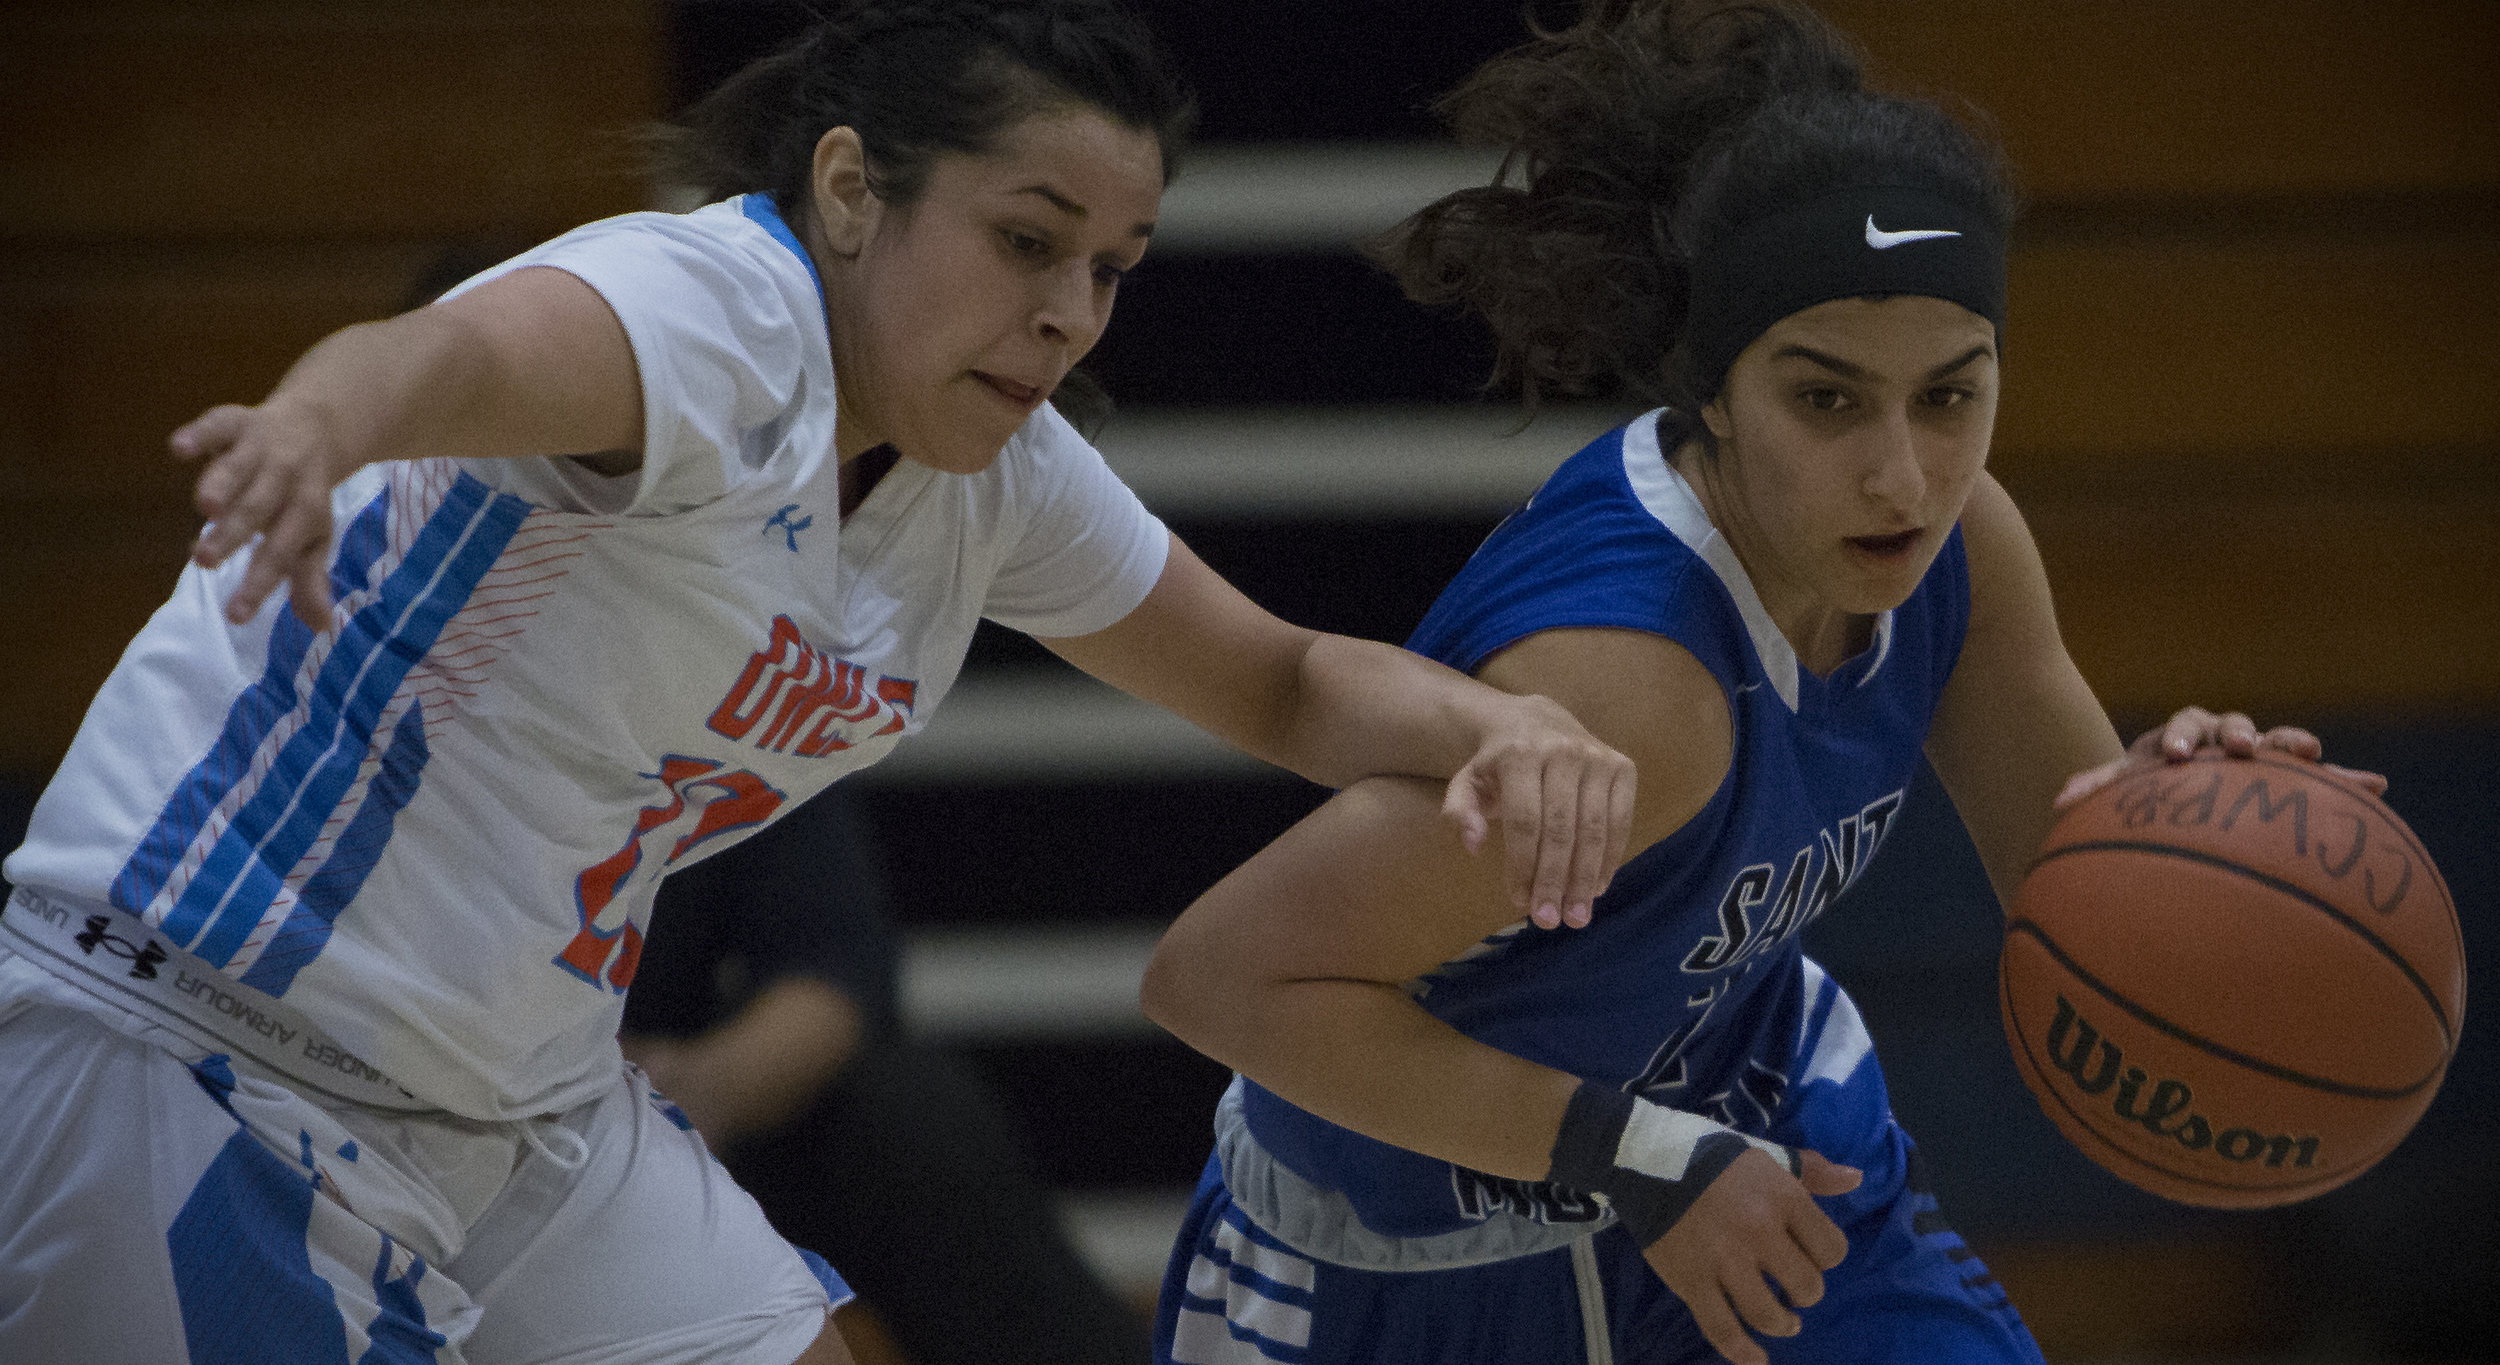 December 4th 2016. The Santa Monica College Corsair Womens Basketball team freshman guard (2) Jessica Melamed (blue,right) dribbling past The Citrus College Owls freshman guard (23) Cassandra Martinez (white,left) in the 33rd annual Lady Charger Classic basketball tournament hosted by Cypress College in Cypress, Calif.. The Corsairs would win 74-69 earning them third place in the tournament. Photo By: Daniel Bowyer/Corsair Staff